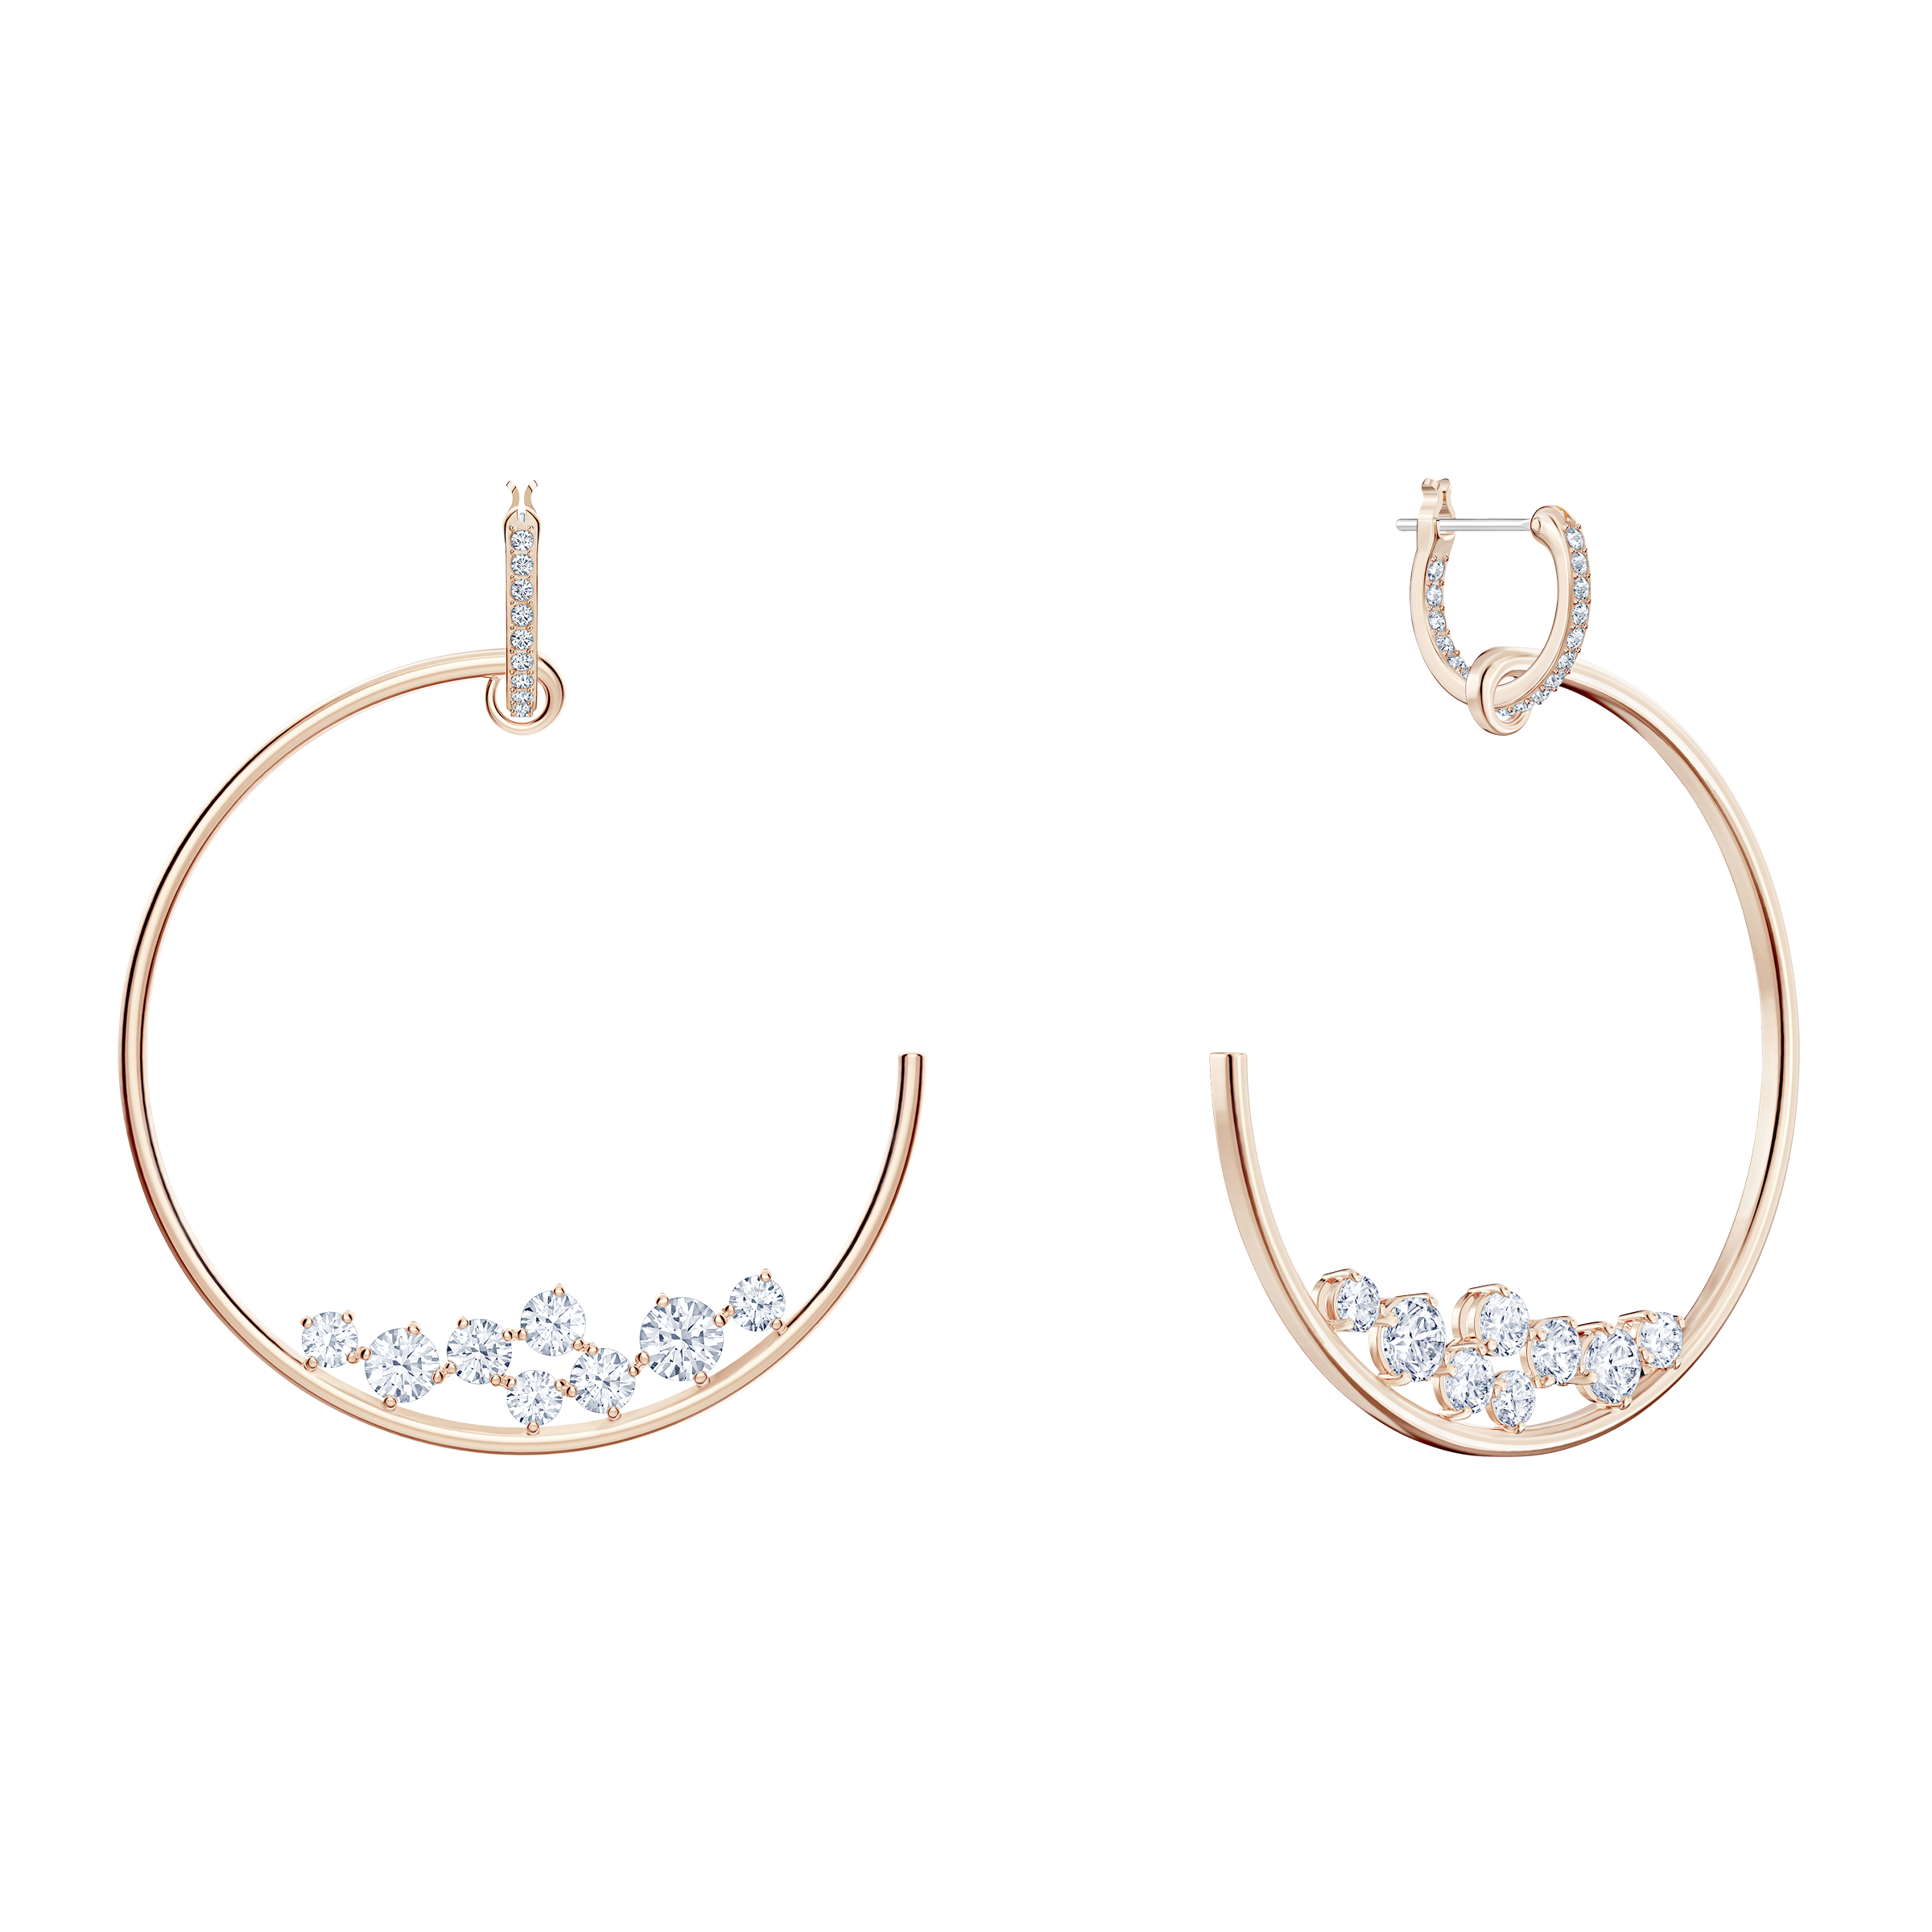 North Hoop Pierced Earrings, White, Rose-gold tone plated